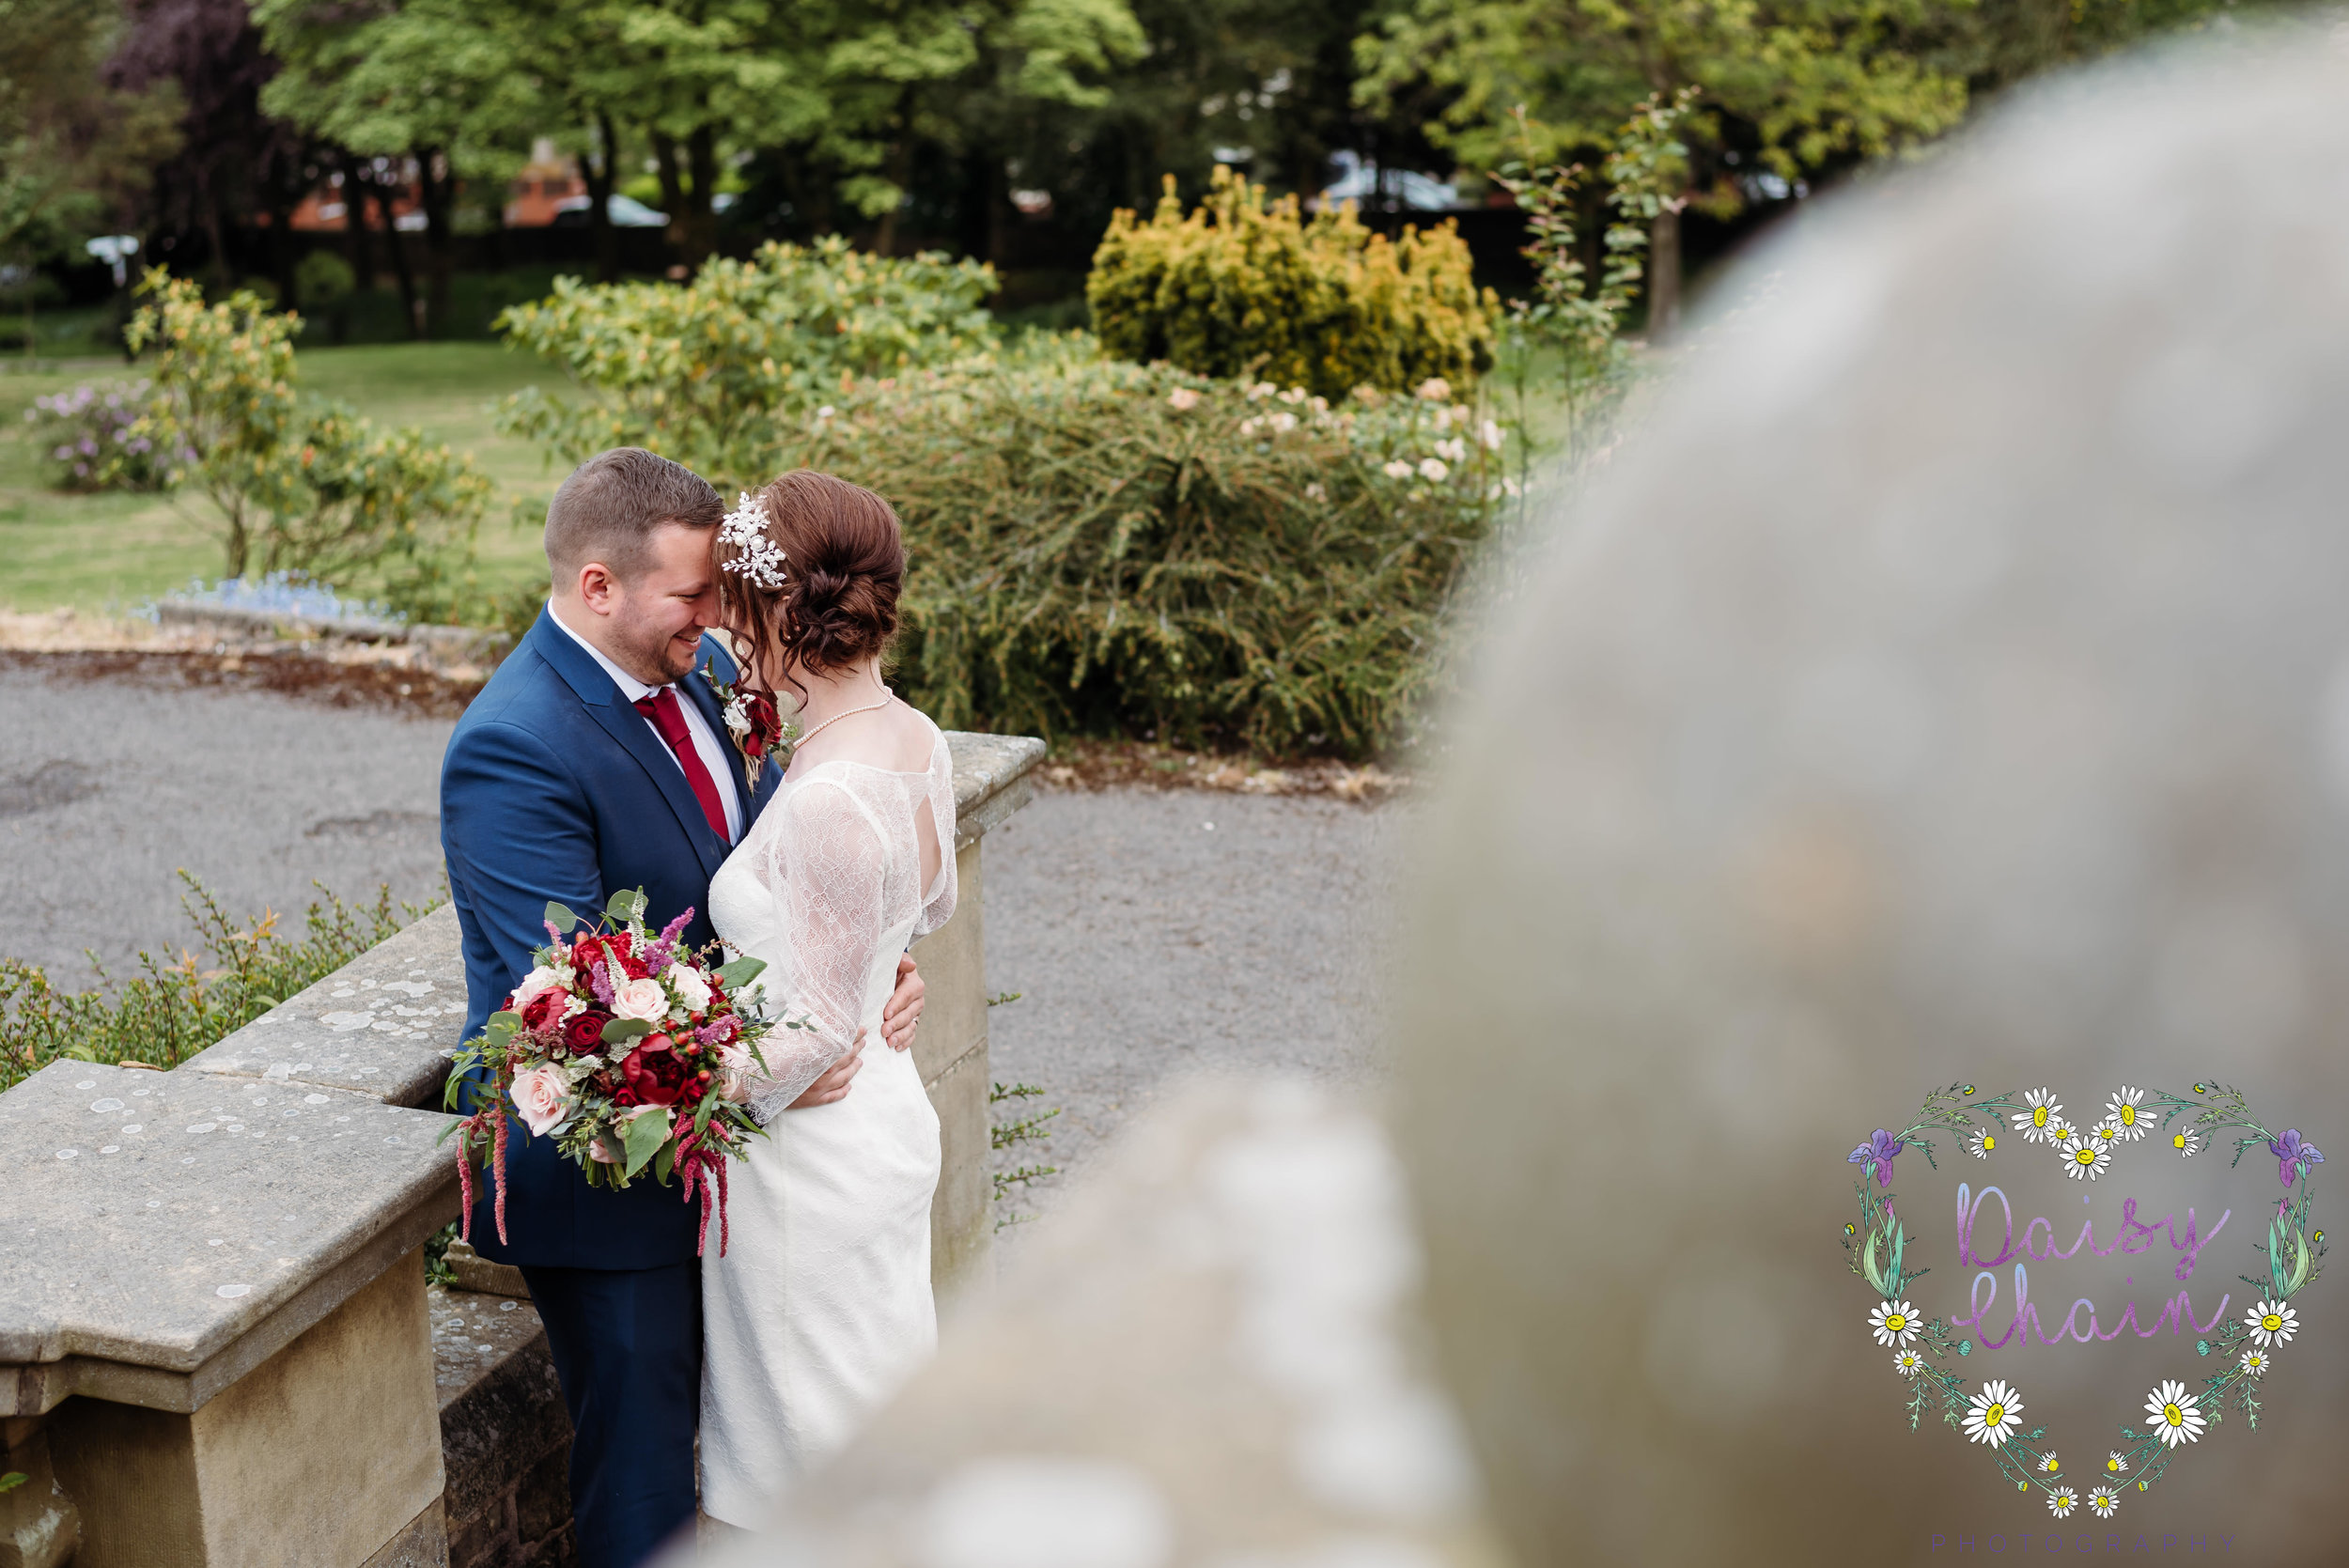 Accrington wedding at Howarth Art Gallery